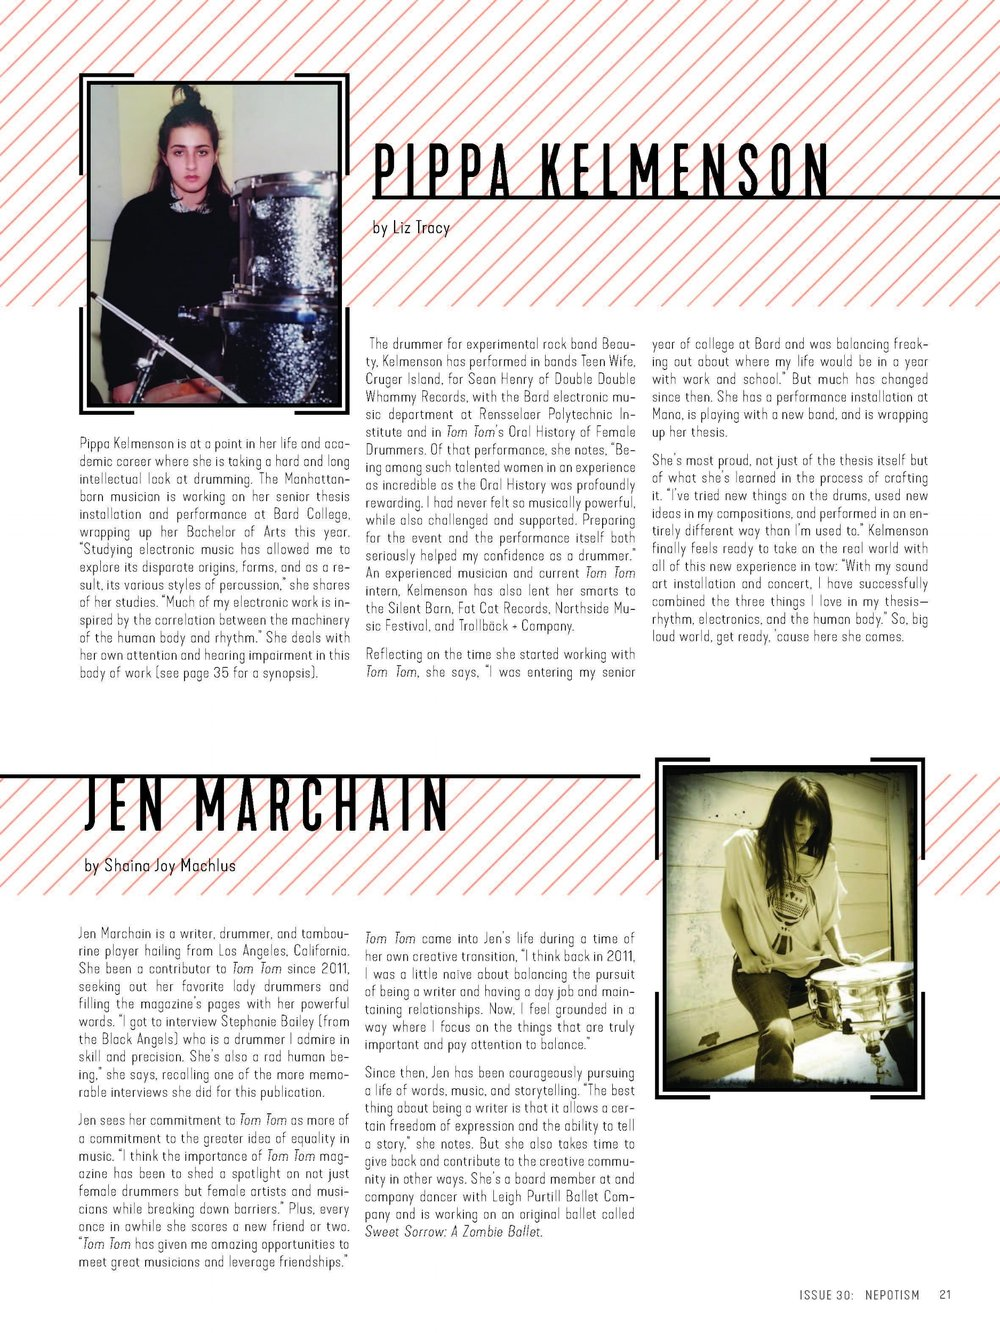 TomTomMag_Issue30_Nepotism_Page_21.jpg